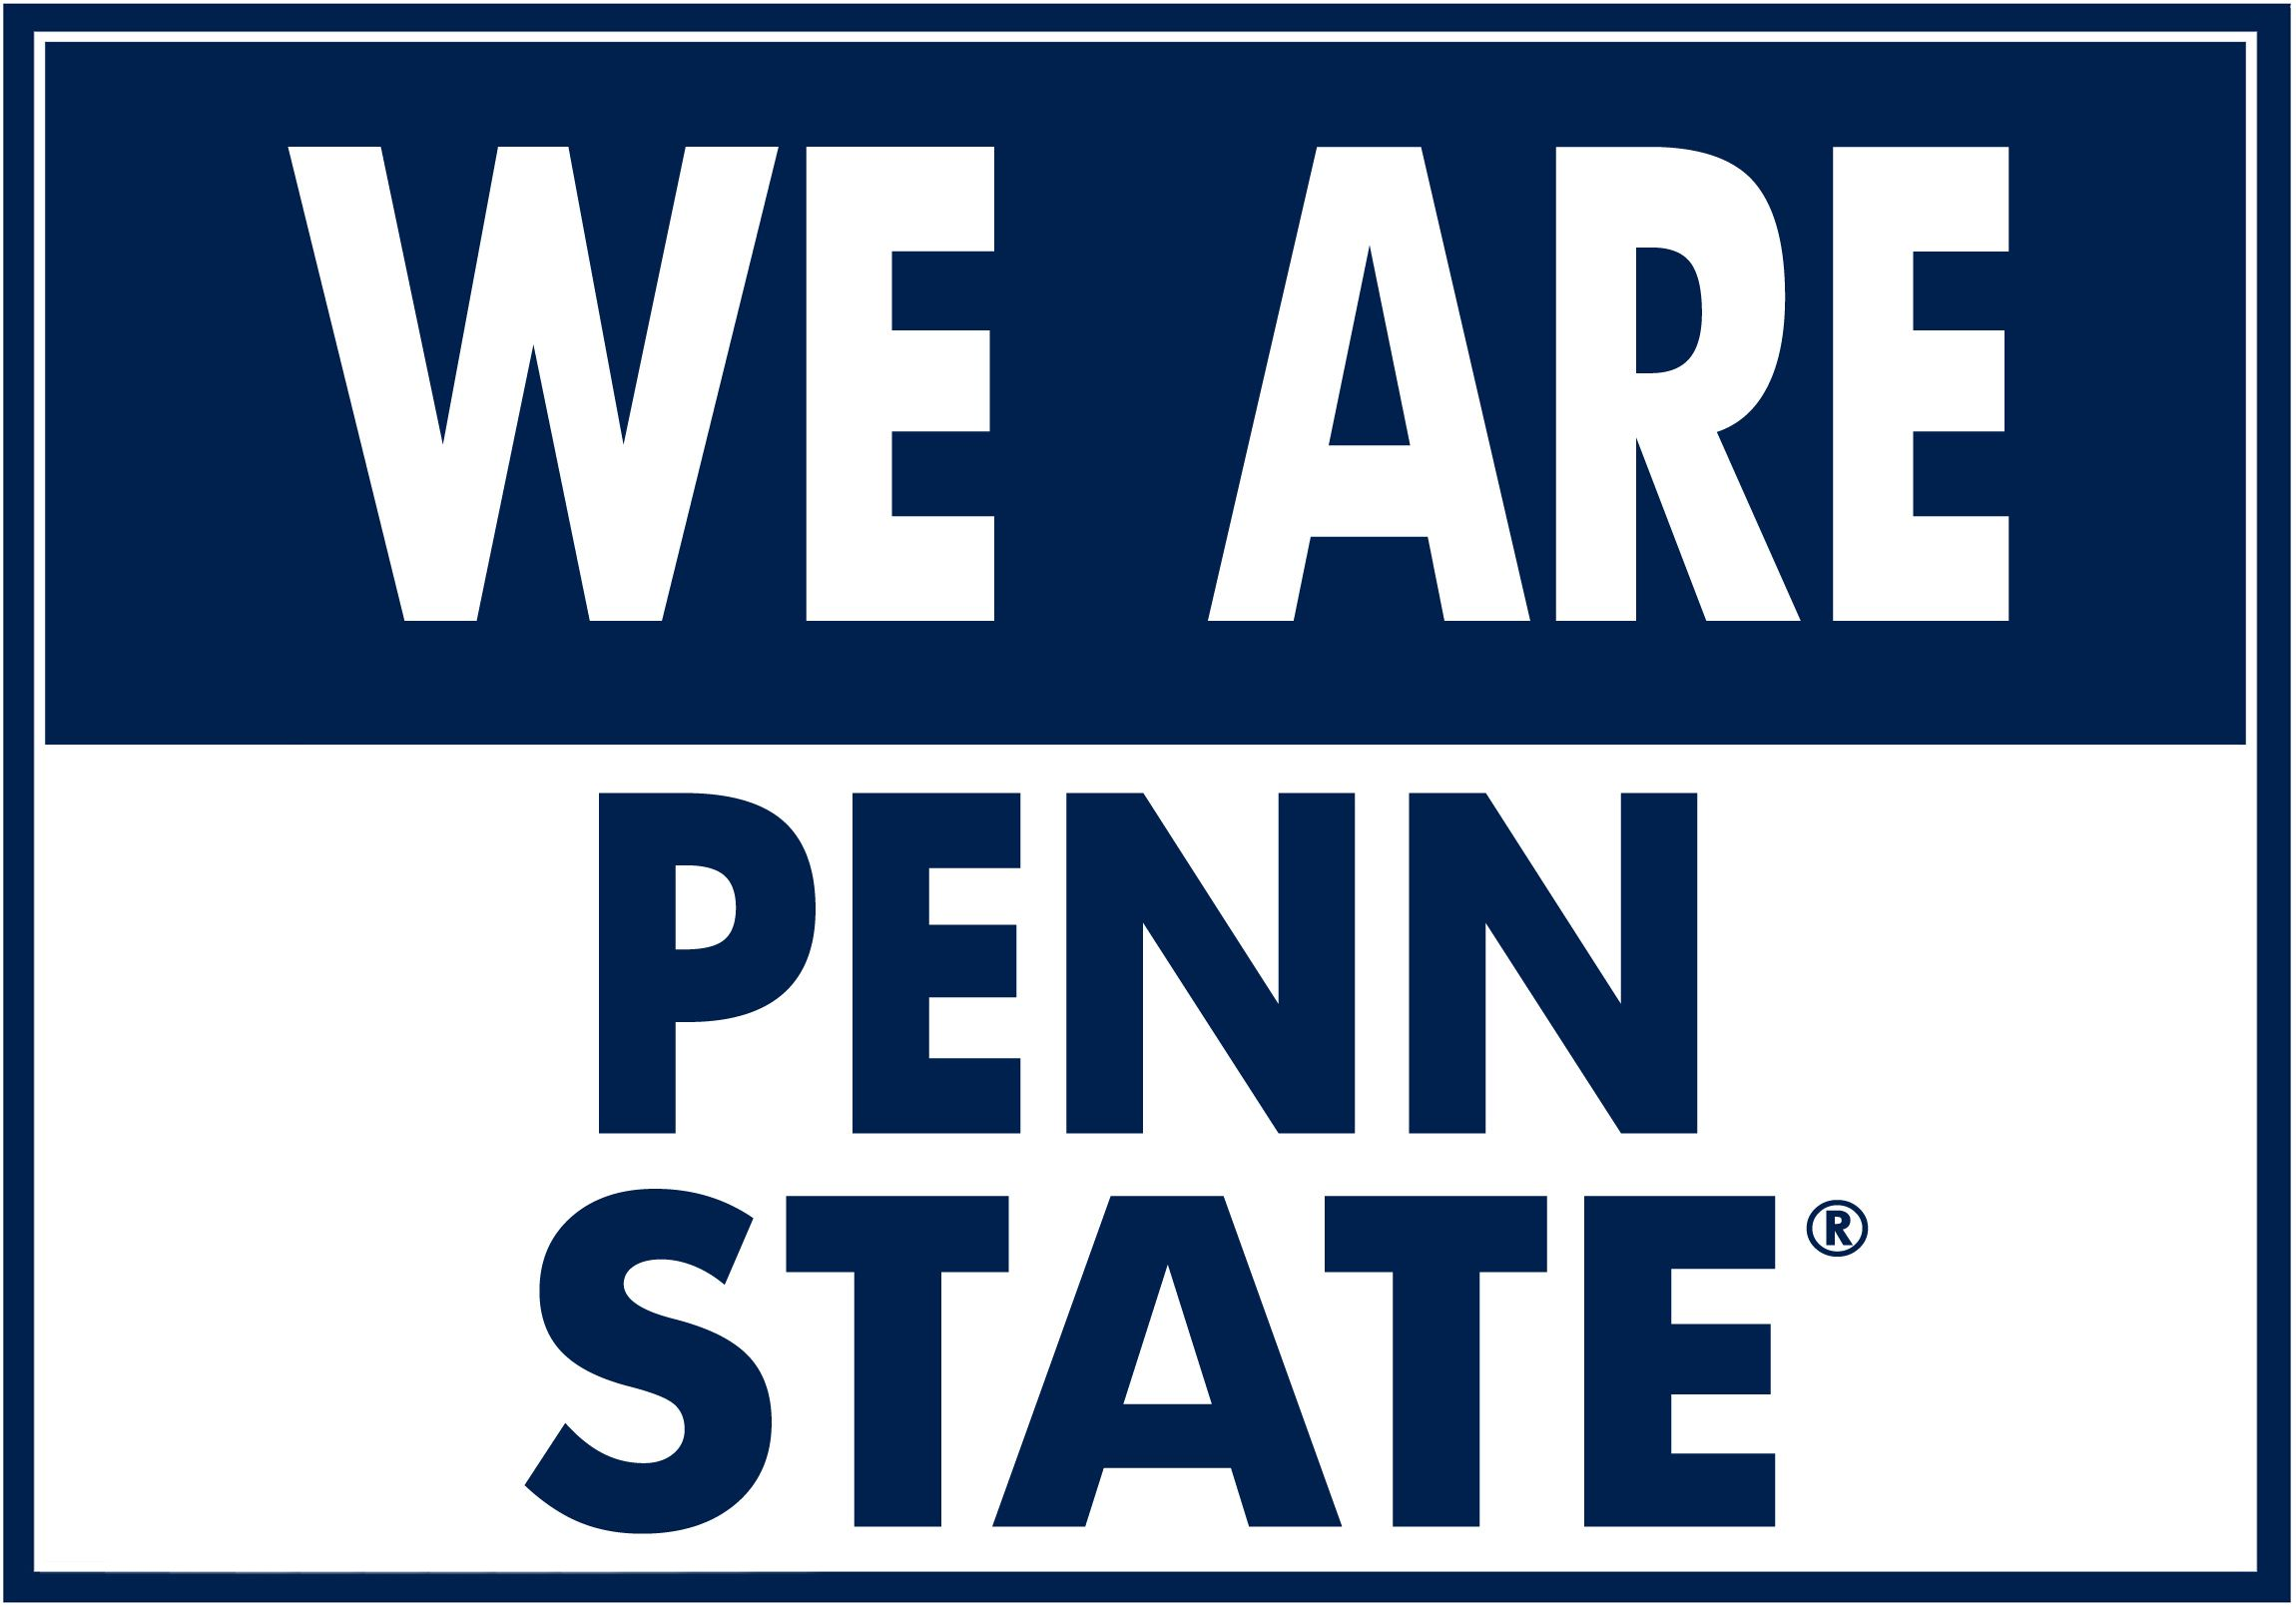 Penn state admissions essay questions